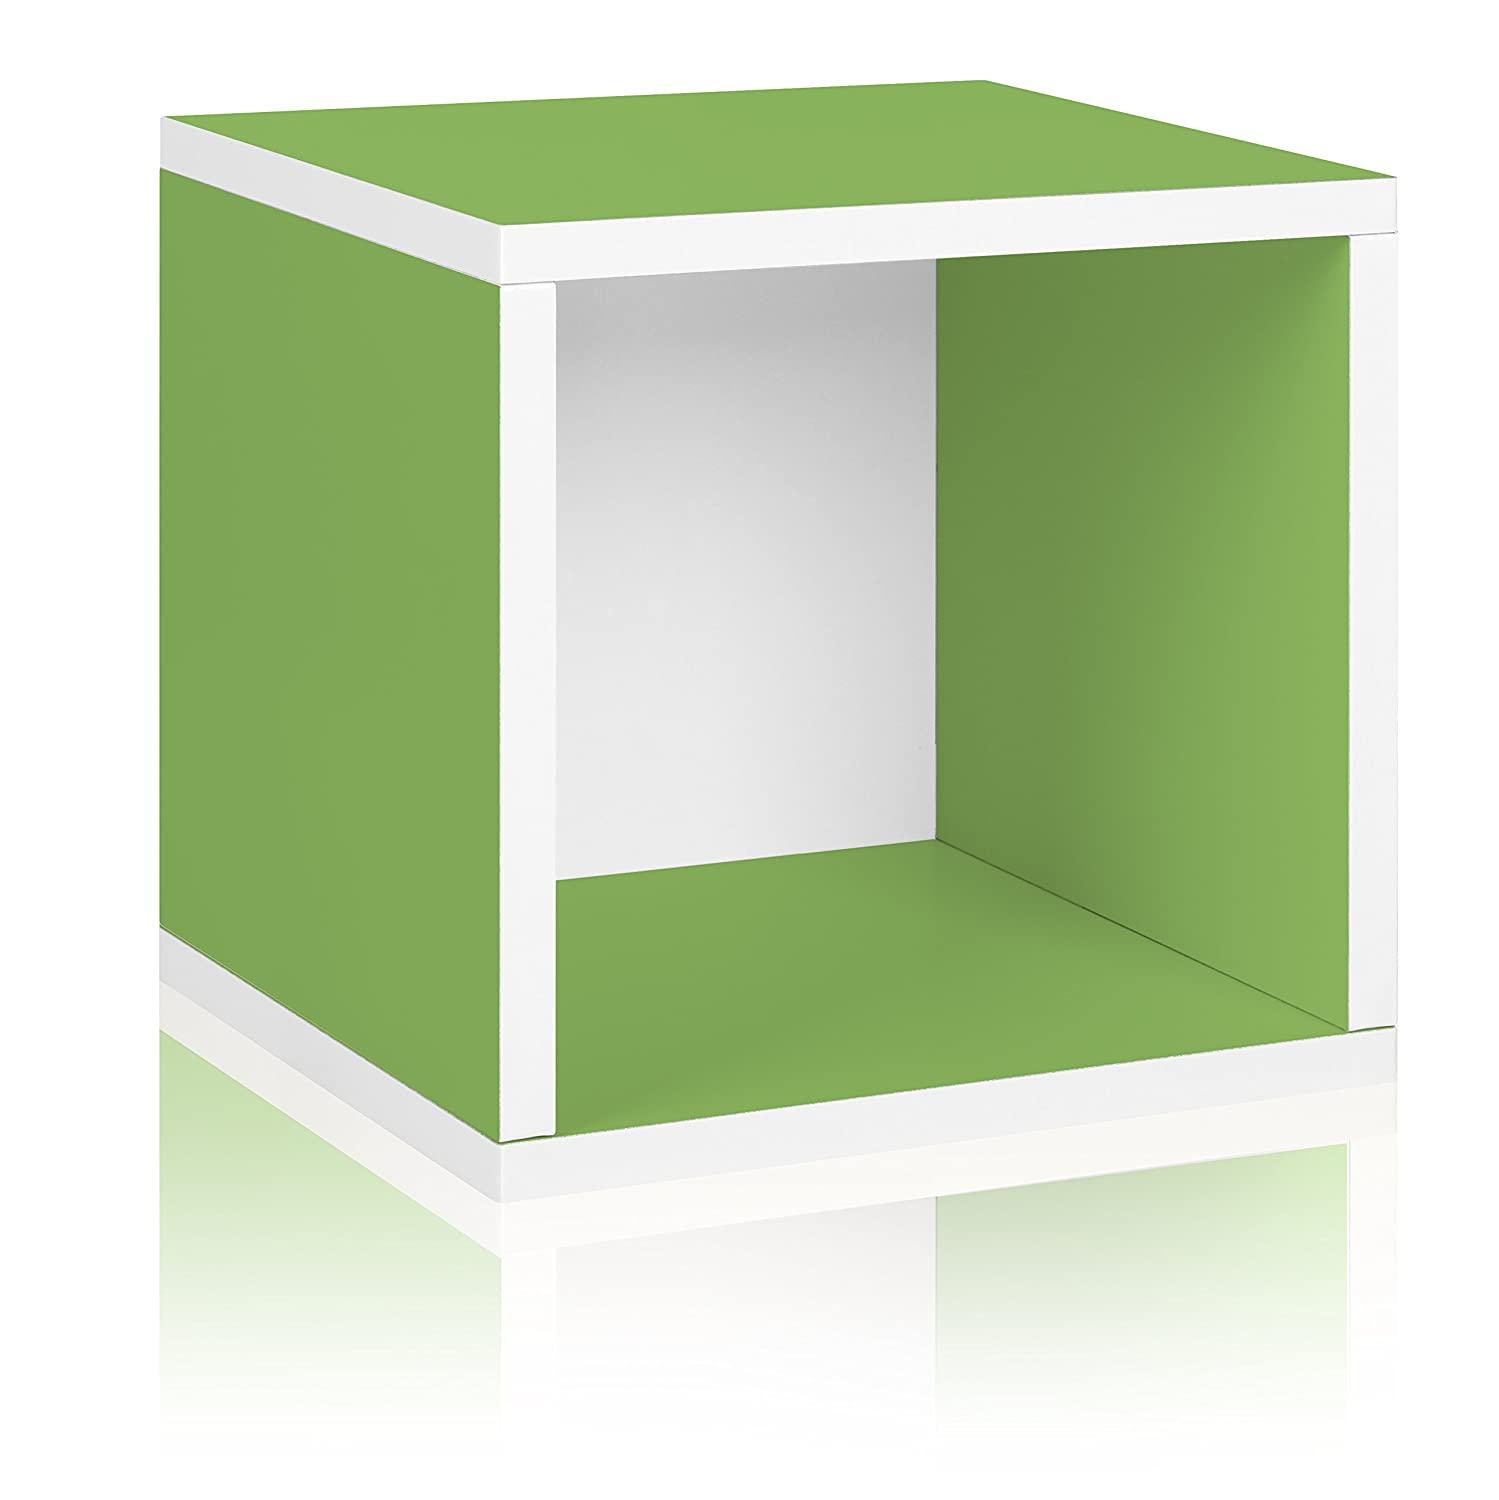 stacking cubes furniture. Way Basics BS-285-340-320-GN Eco Stackable Storage Cube And Cubby Organizer, Green: Amazon.ca: Home \u0026 Kitchen Stacking Cubes Furniture